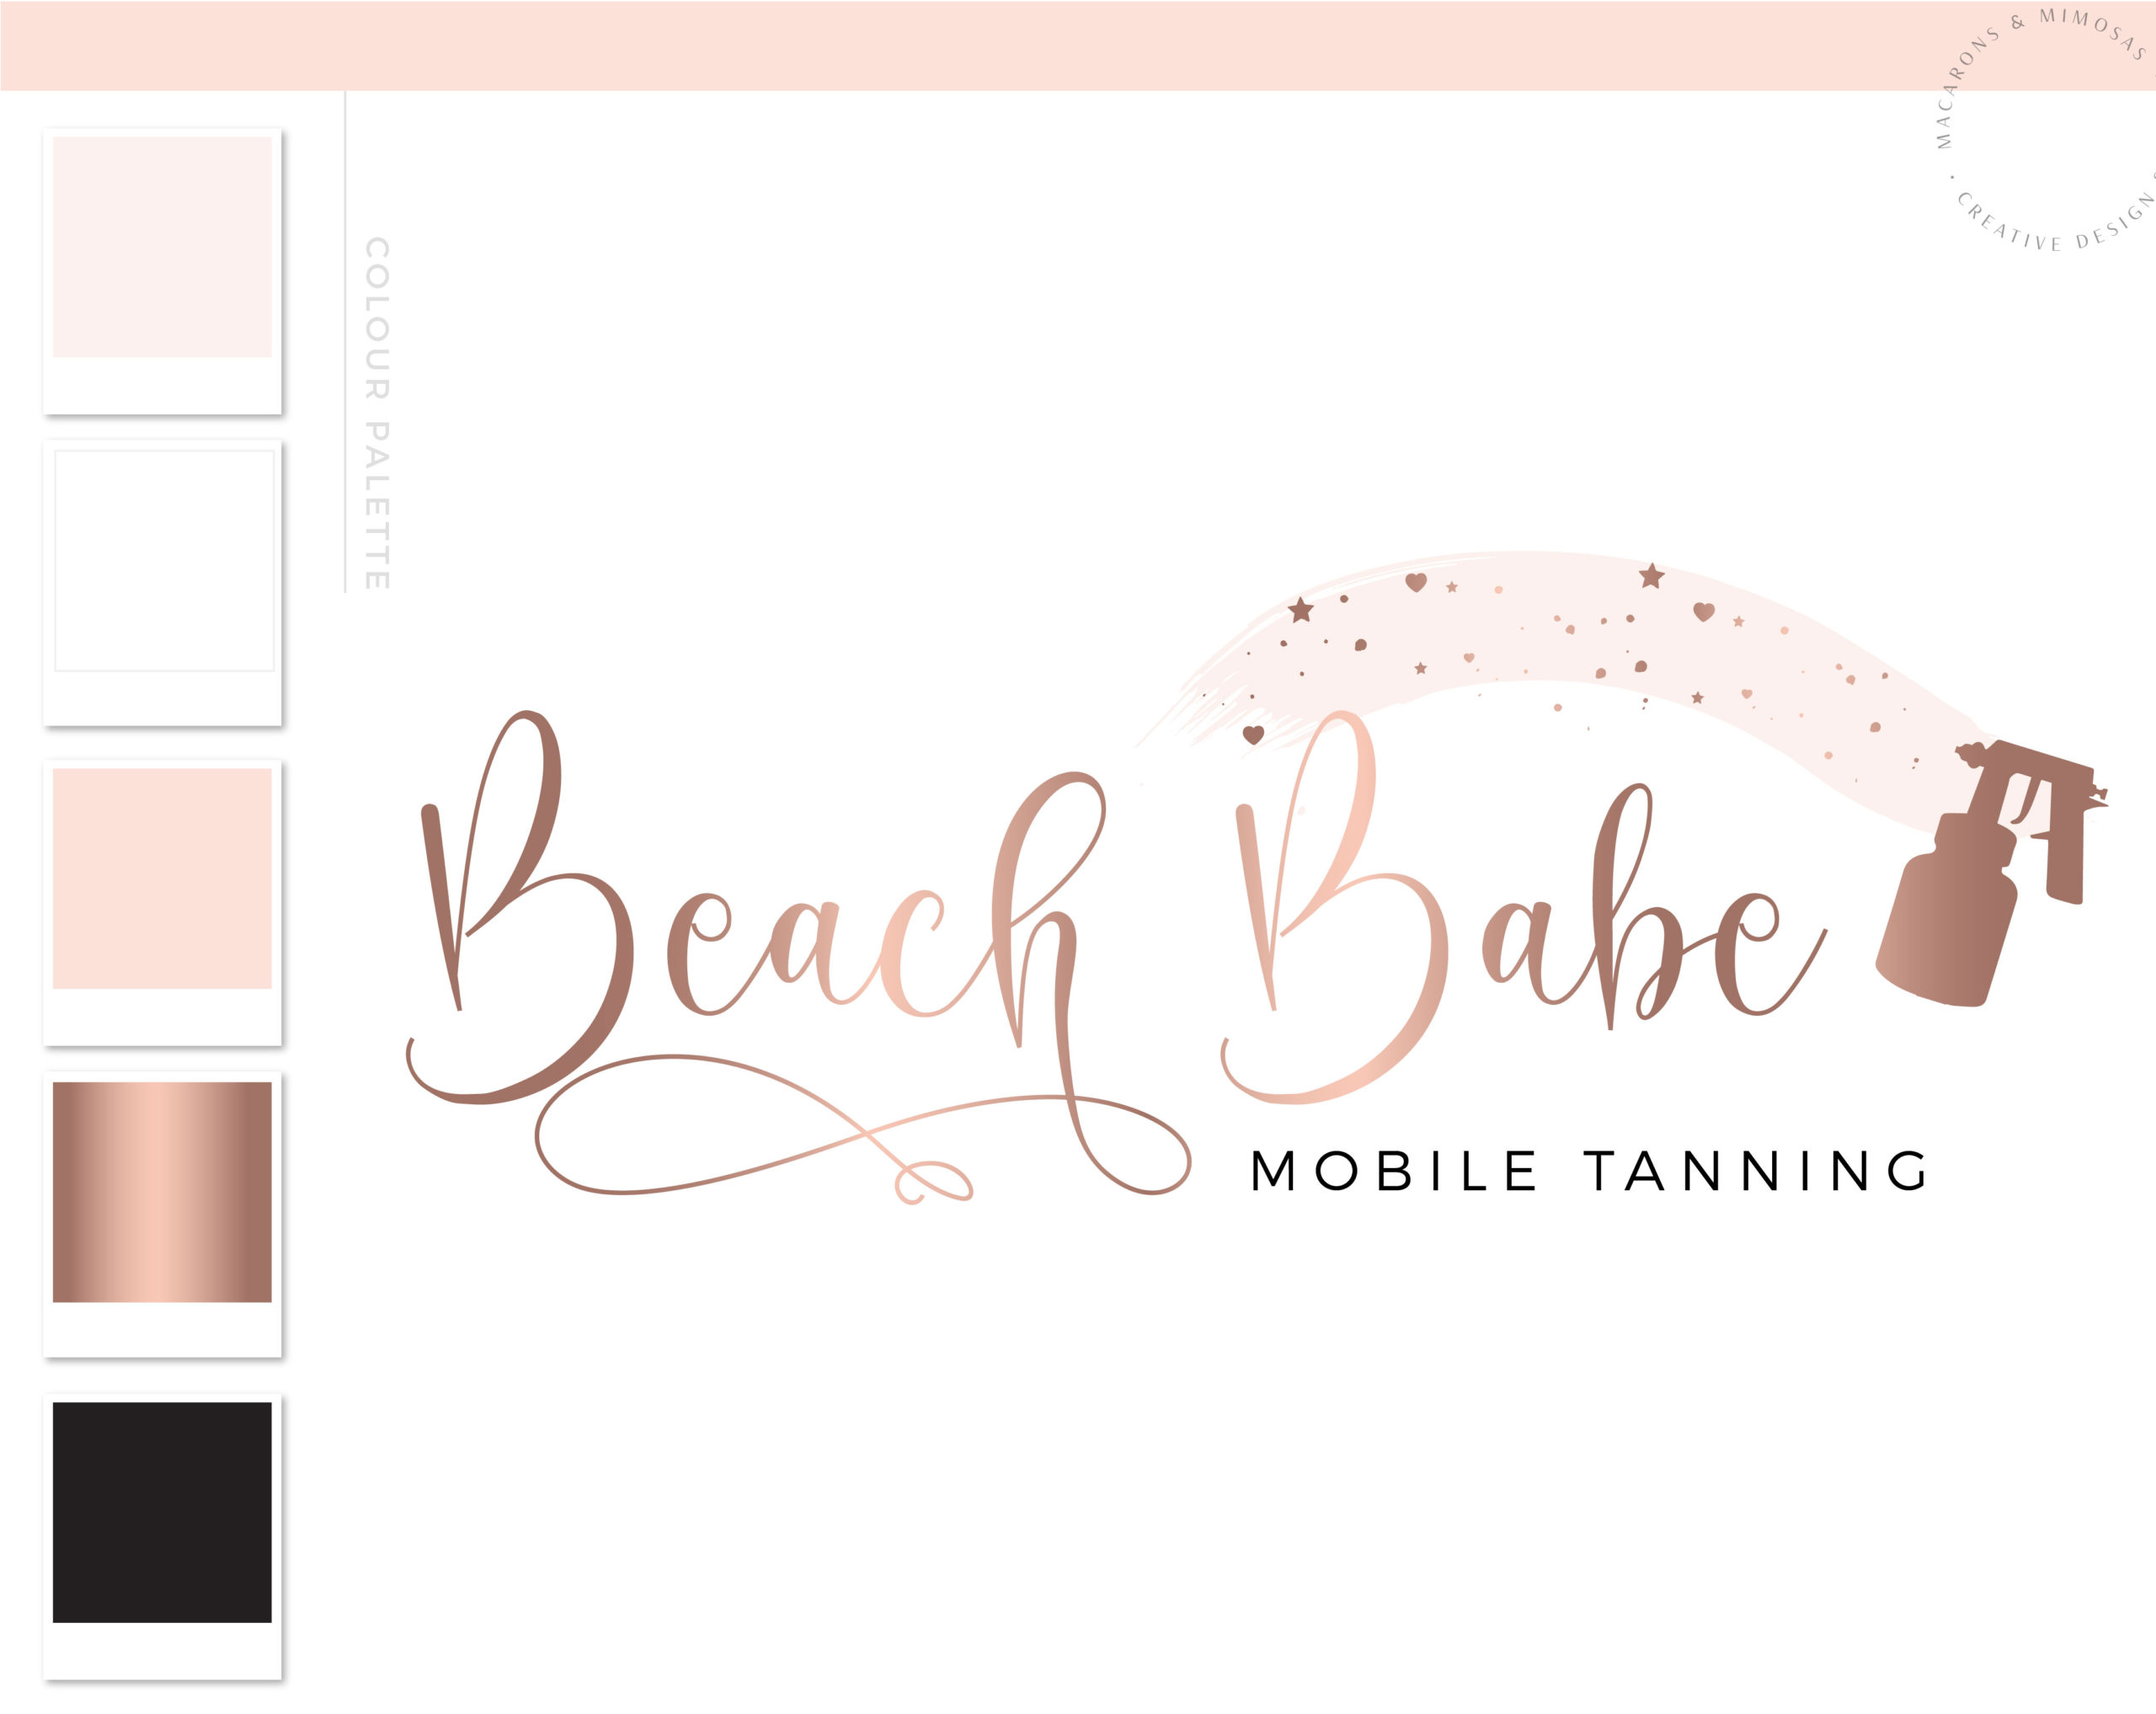 Tanning Logo Design, Spray Tan Branding Watermark, Stars Heart Spray Gun Mobile Tanning Logo Package, Rose Gold Premade Logo